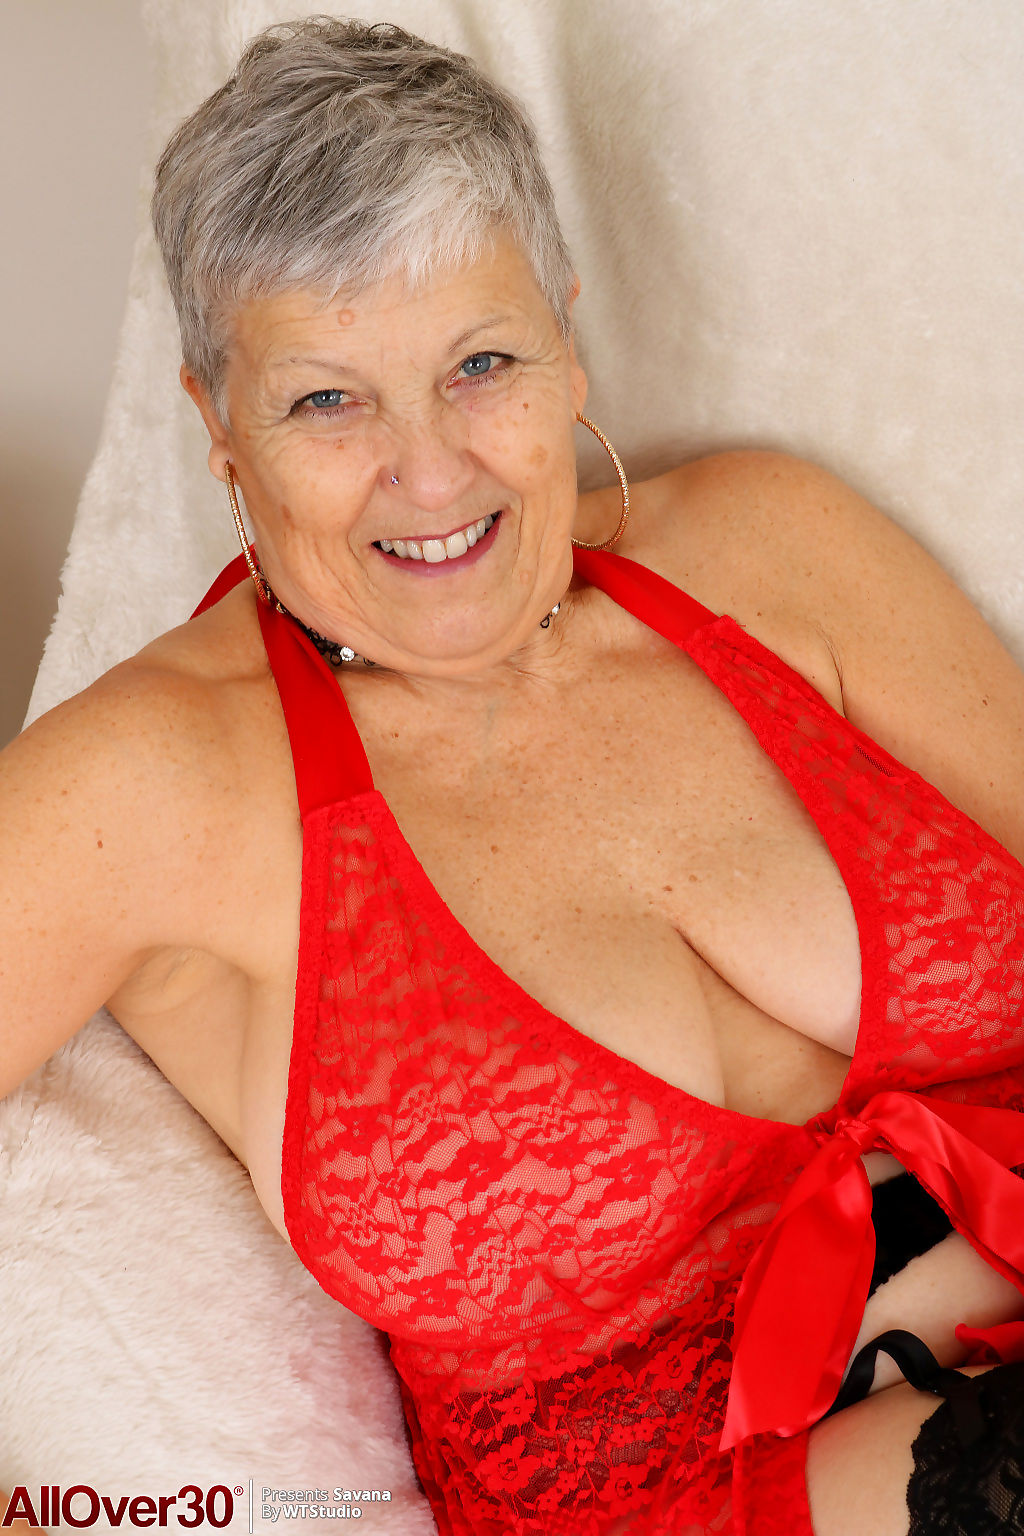 Granny savana takes off her lingerie - part 2844